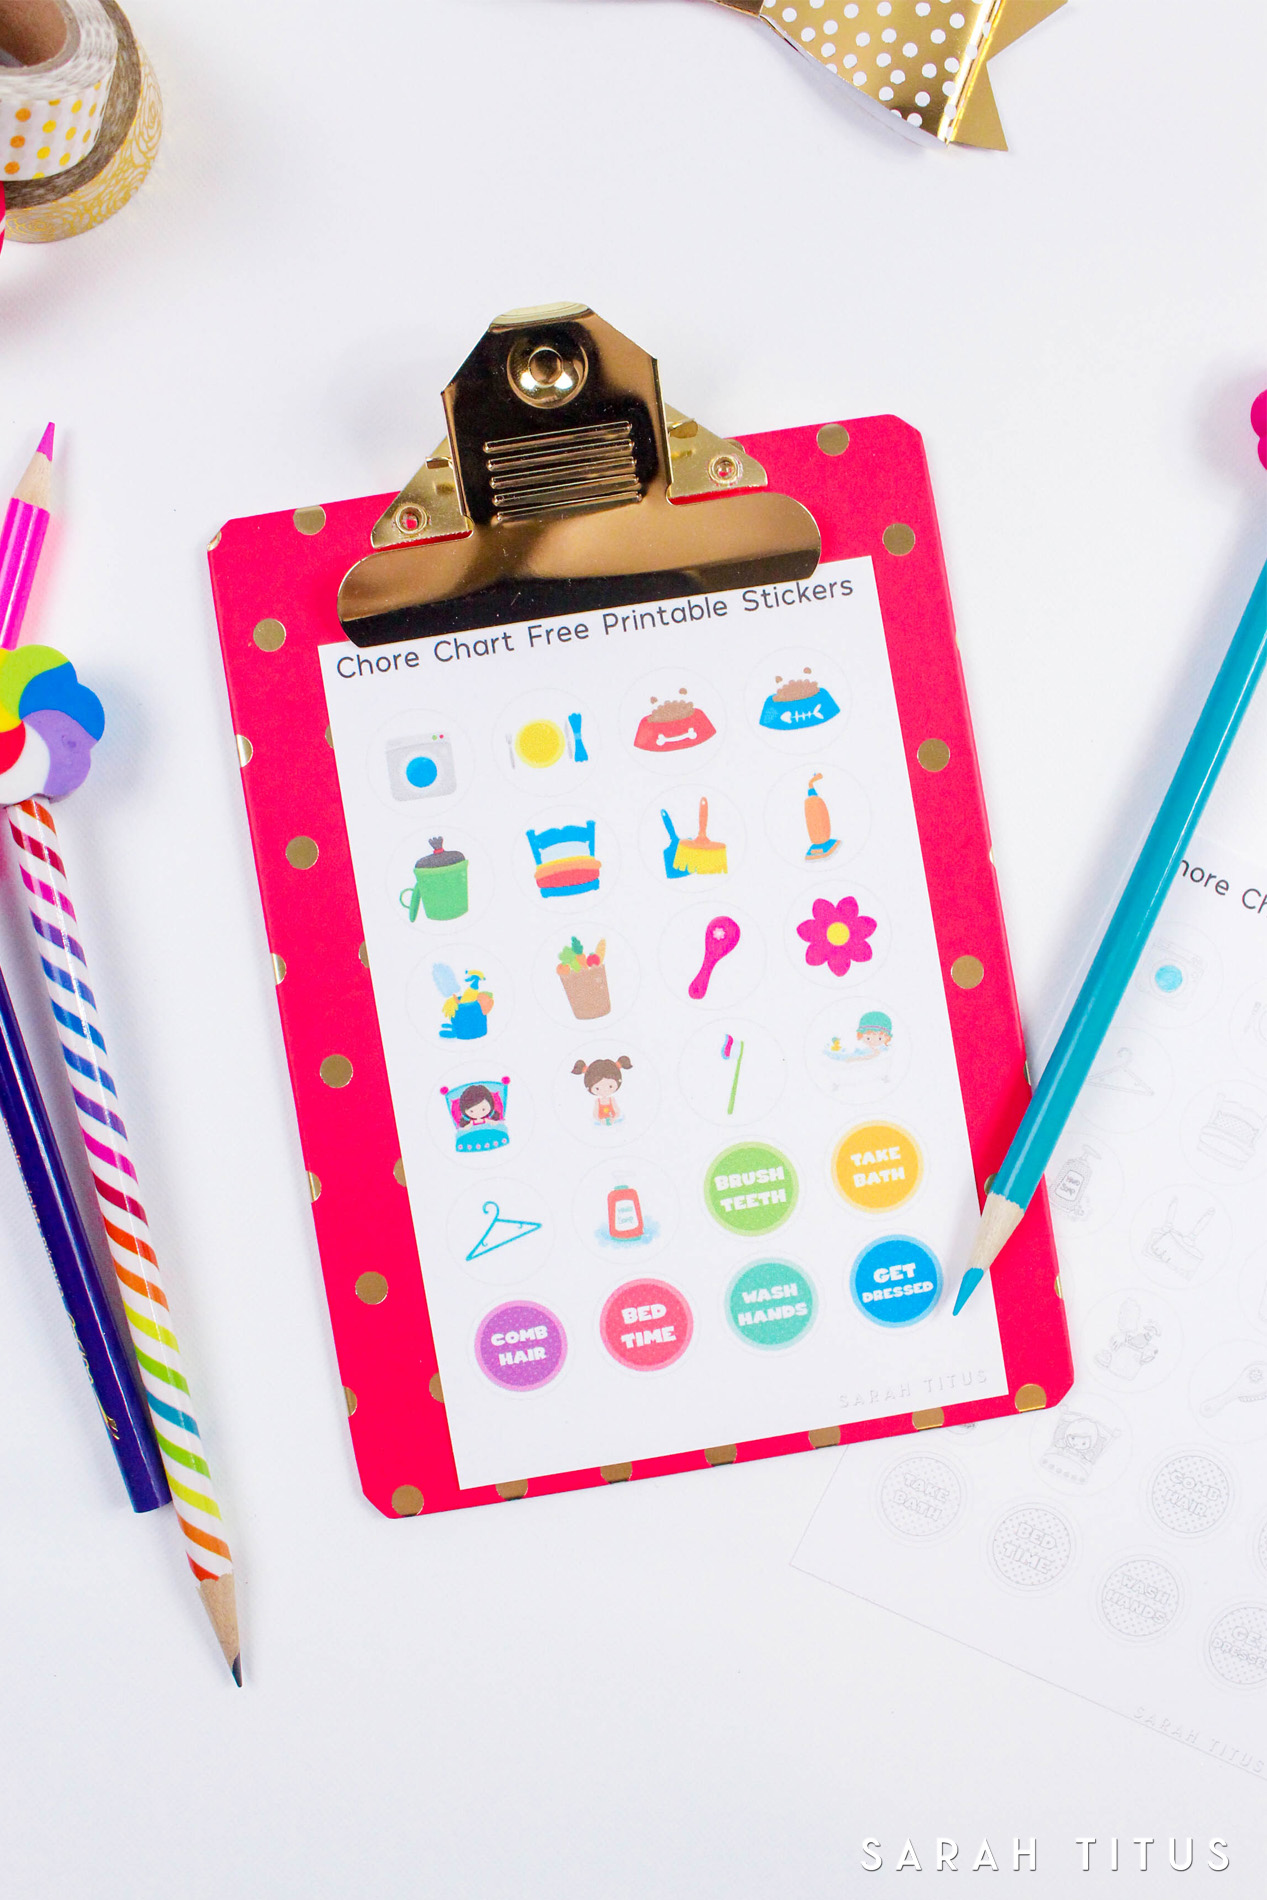 picture regarding Free Printable Stickers identified as Free of charge Printable Chore Chart Stickers - Sarah Titus